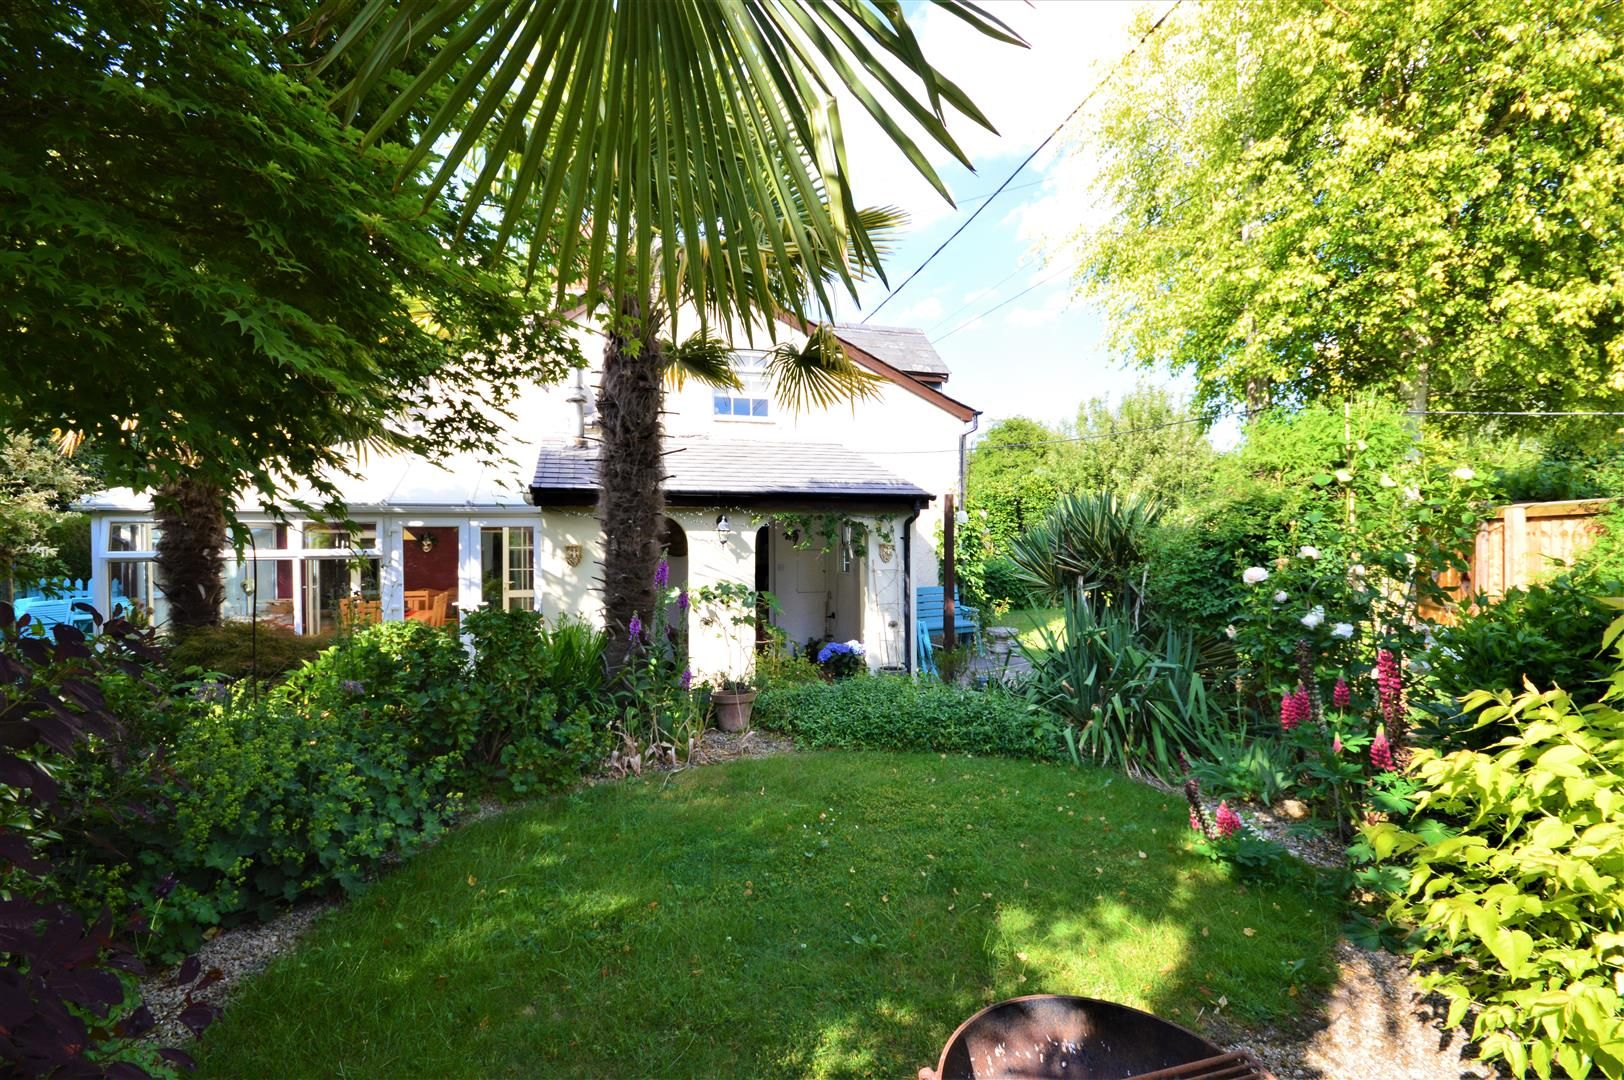 3 bed semi-detached for sale in Stretton Sugwas  - Property Image 2